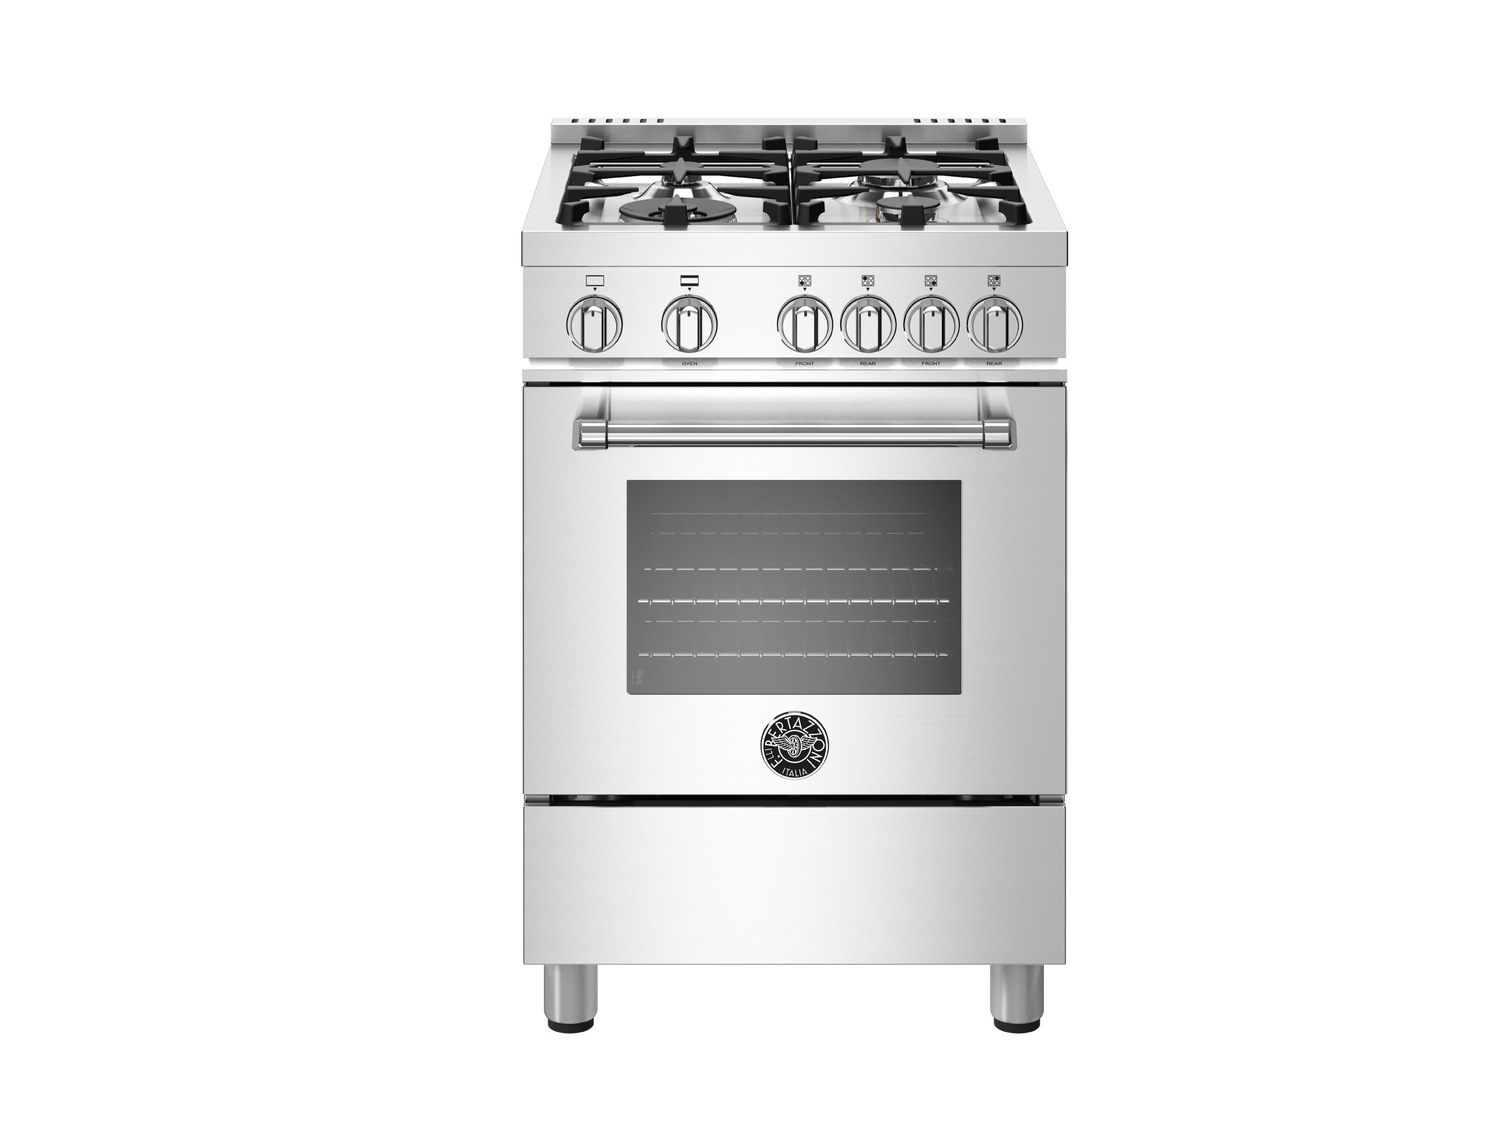 24 inch All Gas Range, 4 Burners Stainless Steel  STAINLESS STEEL